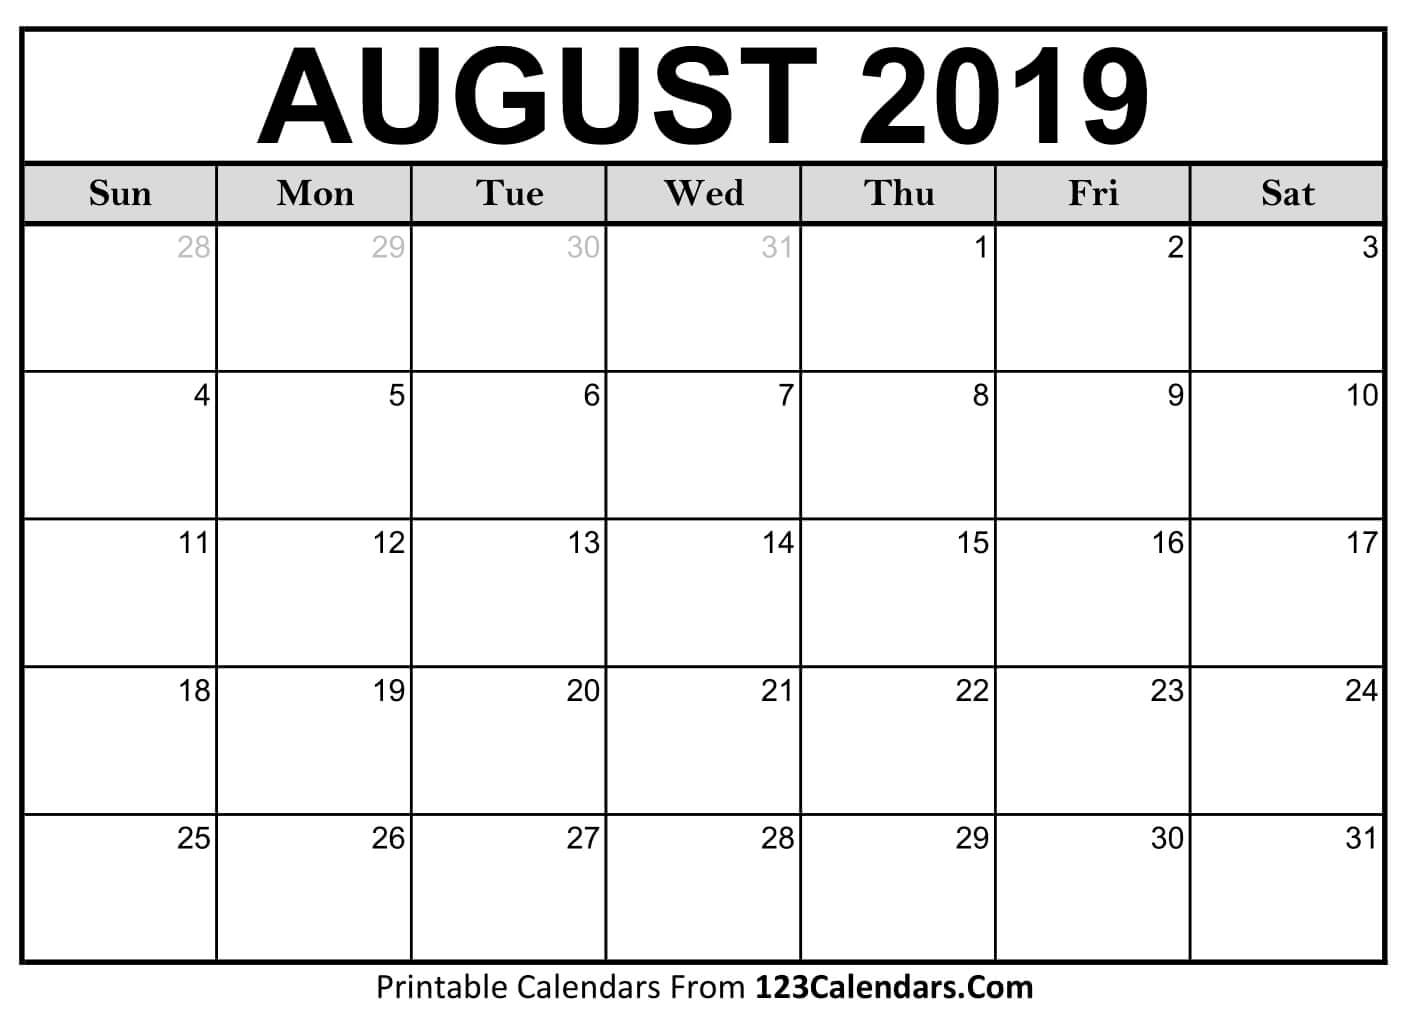 Pick Printable 30 Day Calendar August 2019 E28b86 The Best